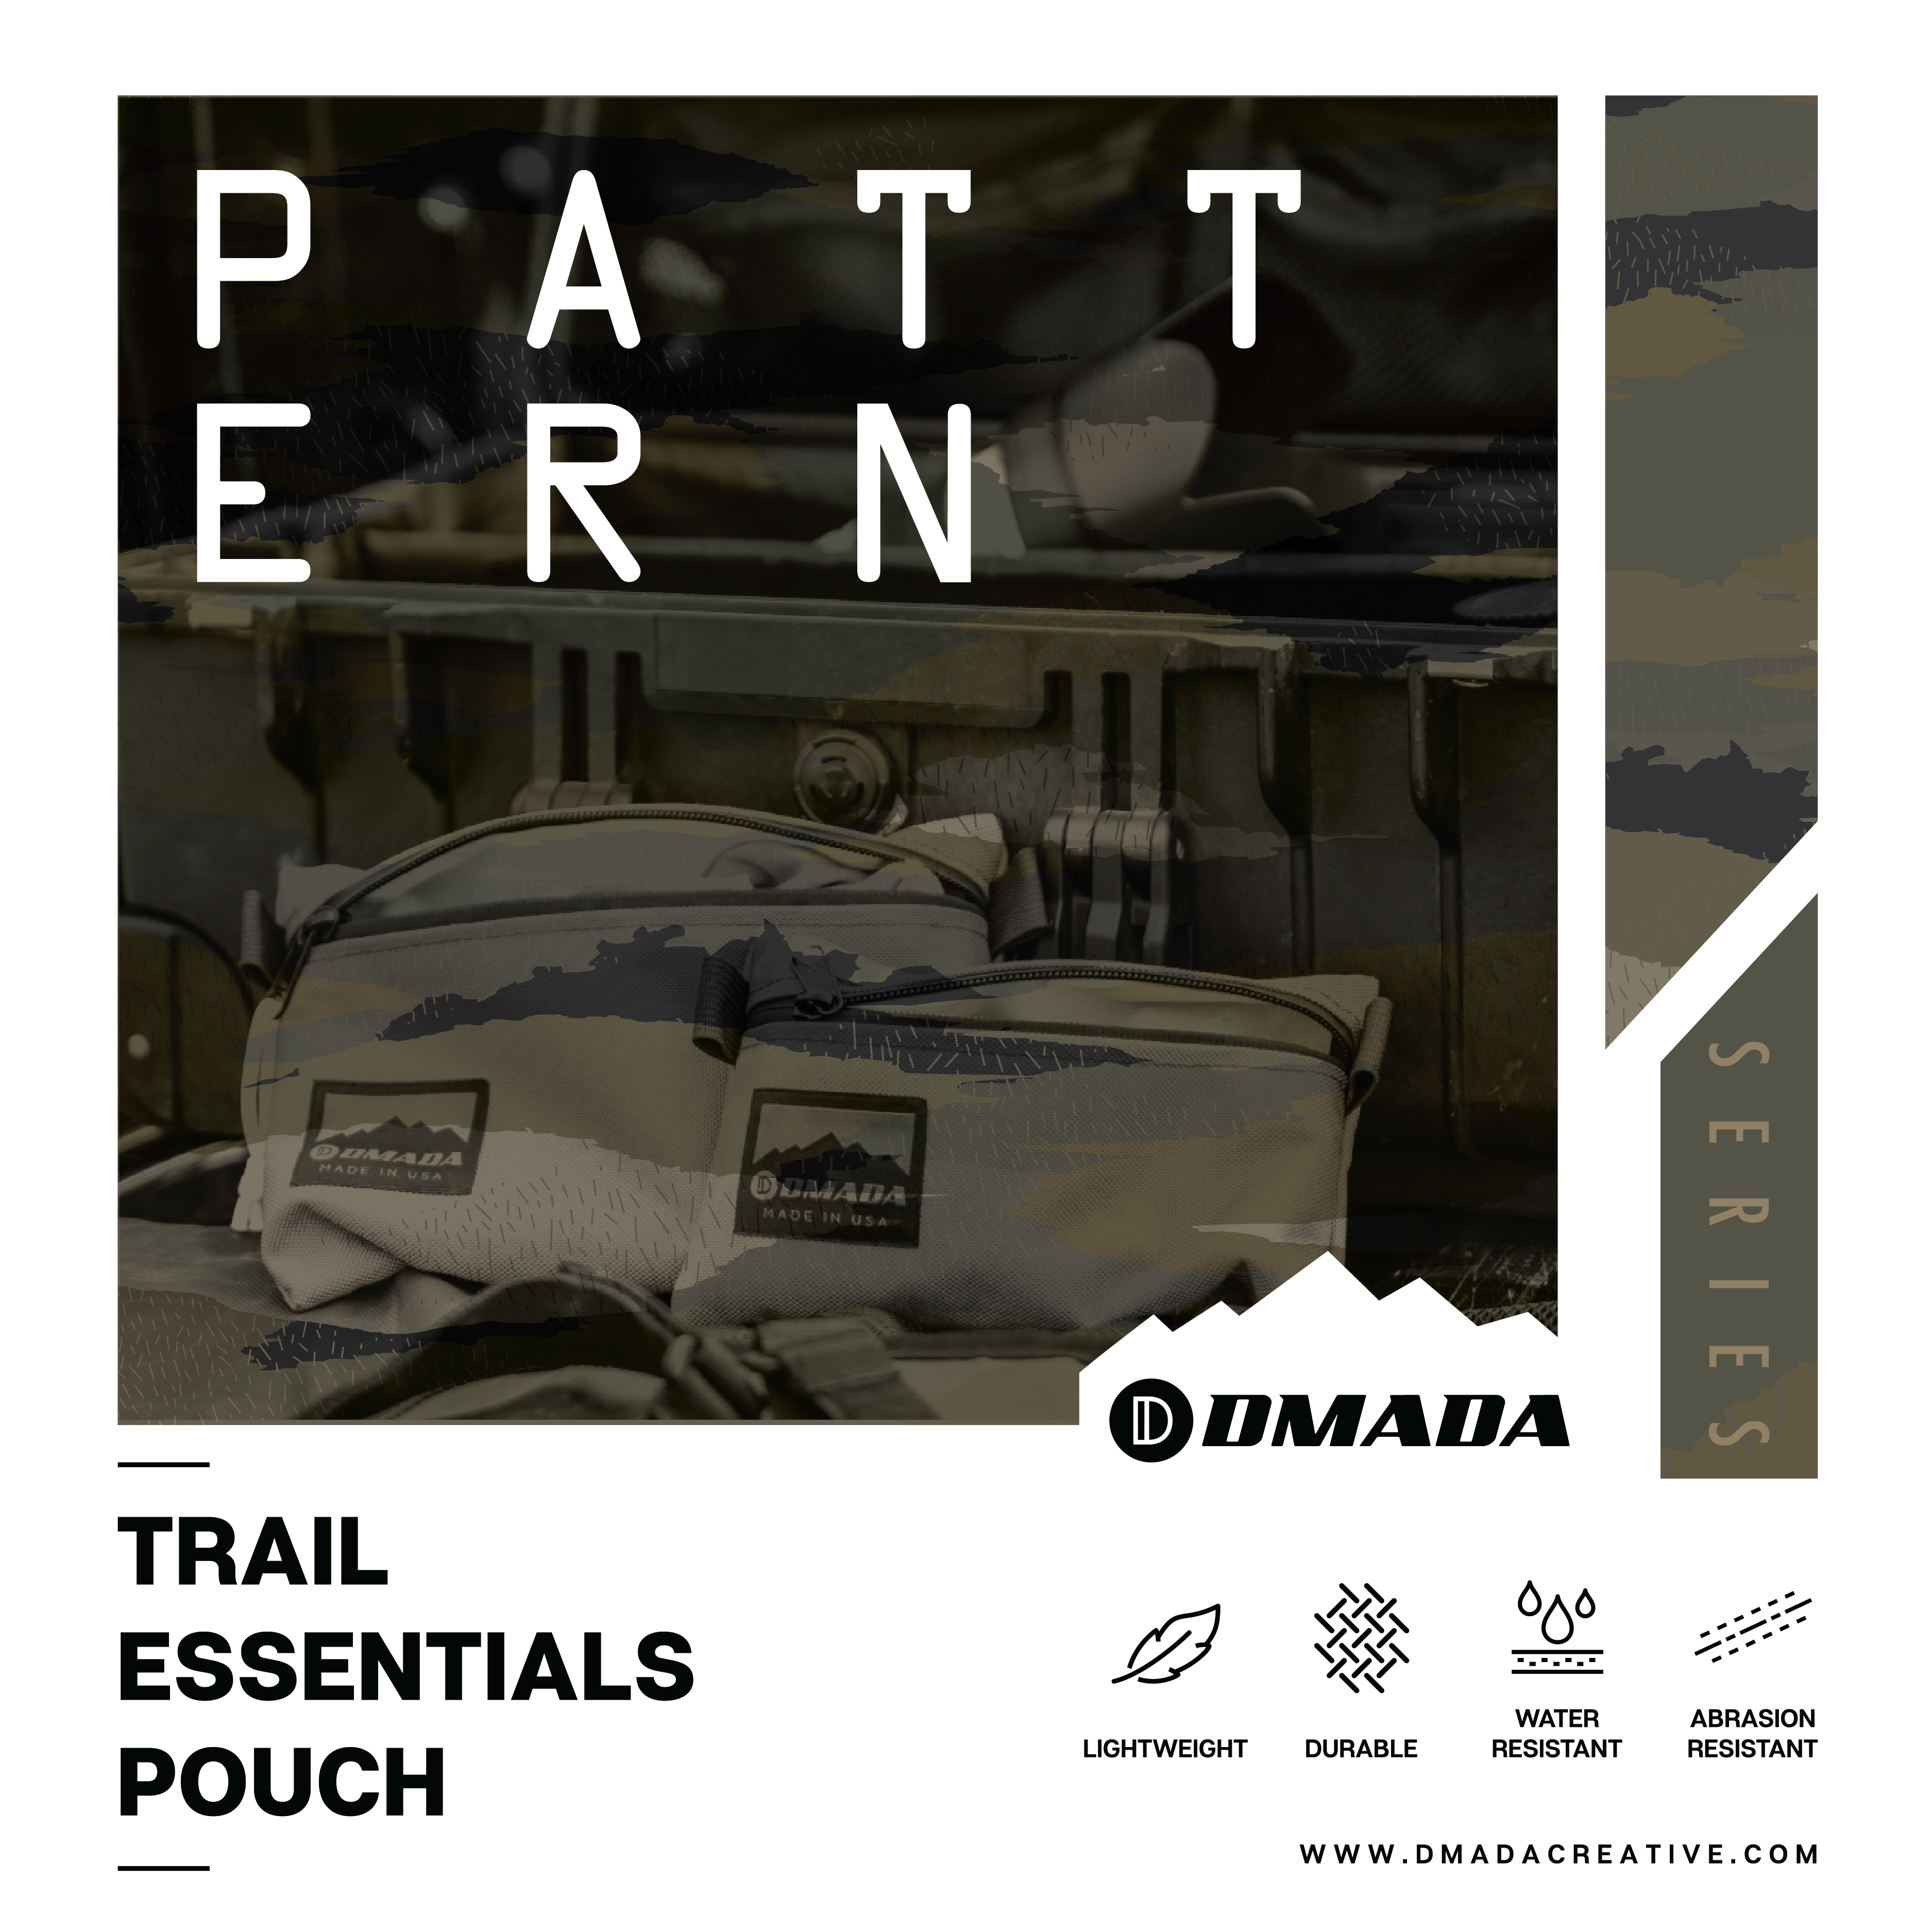 Trail Essentials Pouch - Printed Series